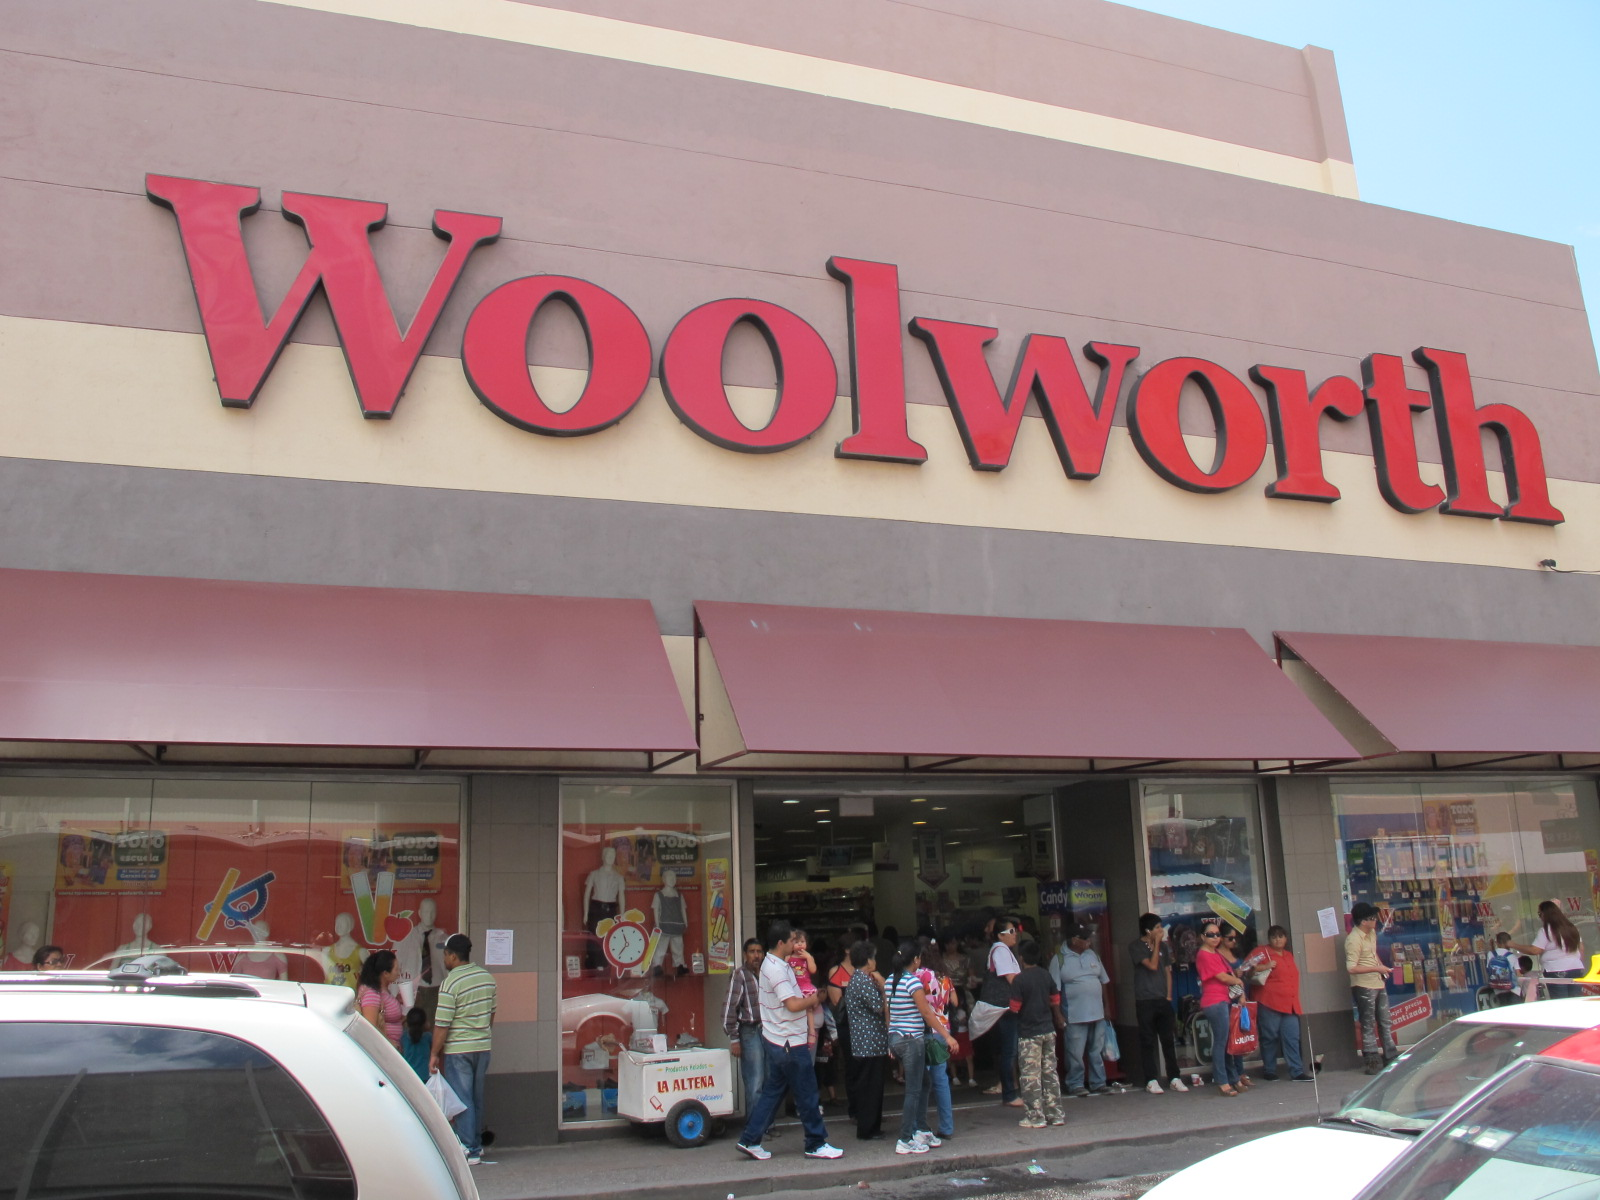 Kitchener Furniture Stores Woolworth Stores In Mexico Bruce Critchley S Mexico Here